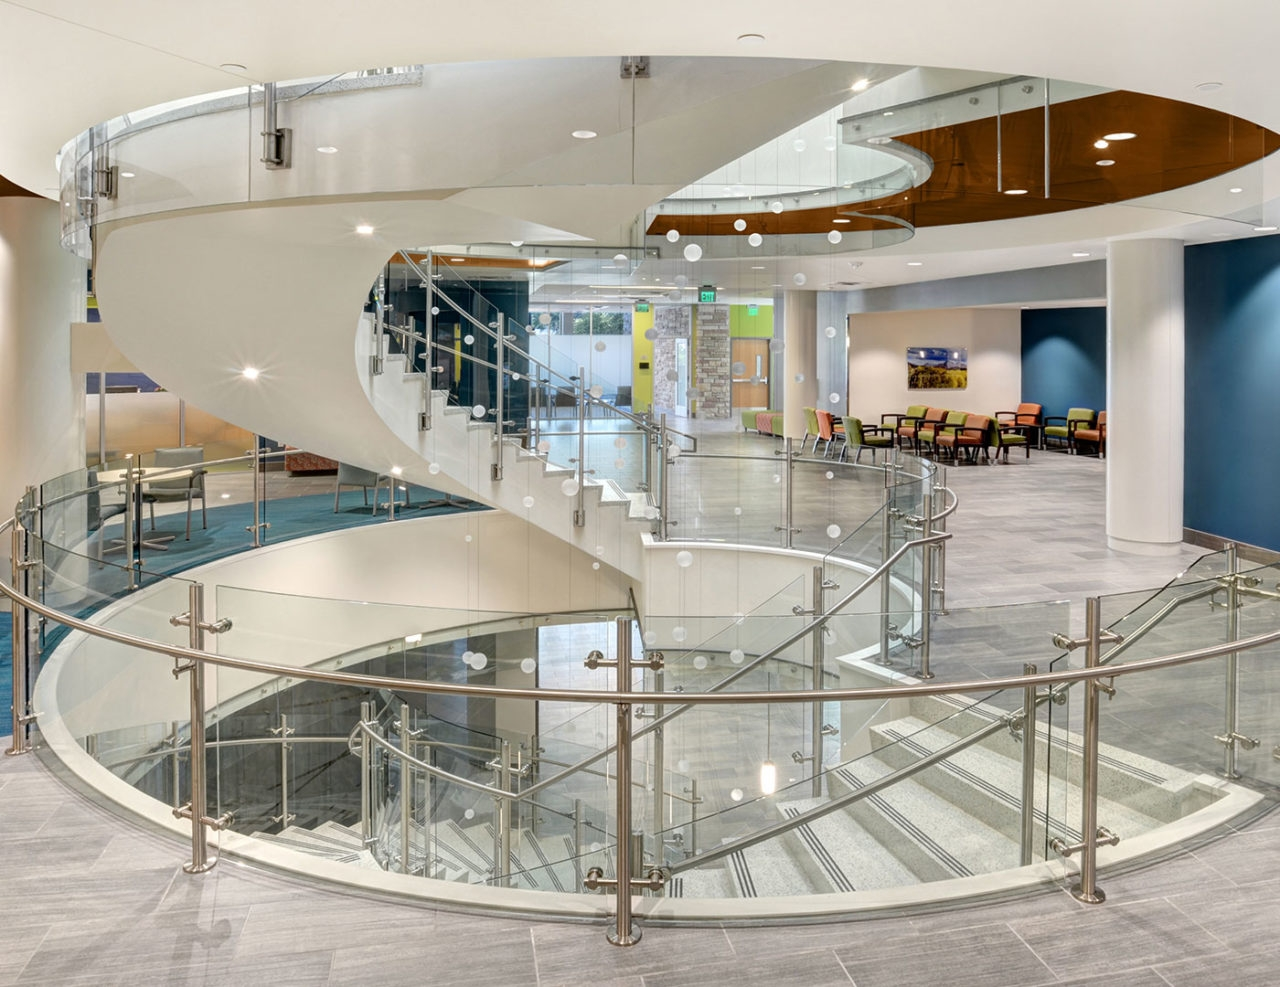 Equinox Glass Railing System Trex Commercial Products | Staircase Design For Commercial Buildings | Cylindrical Glass | Enclosed | Beautiful | Central Staircase | Sleek